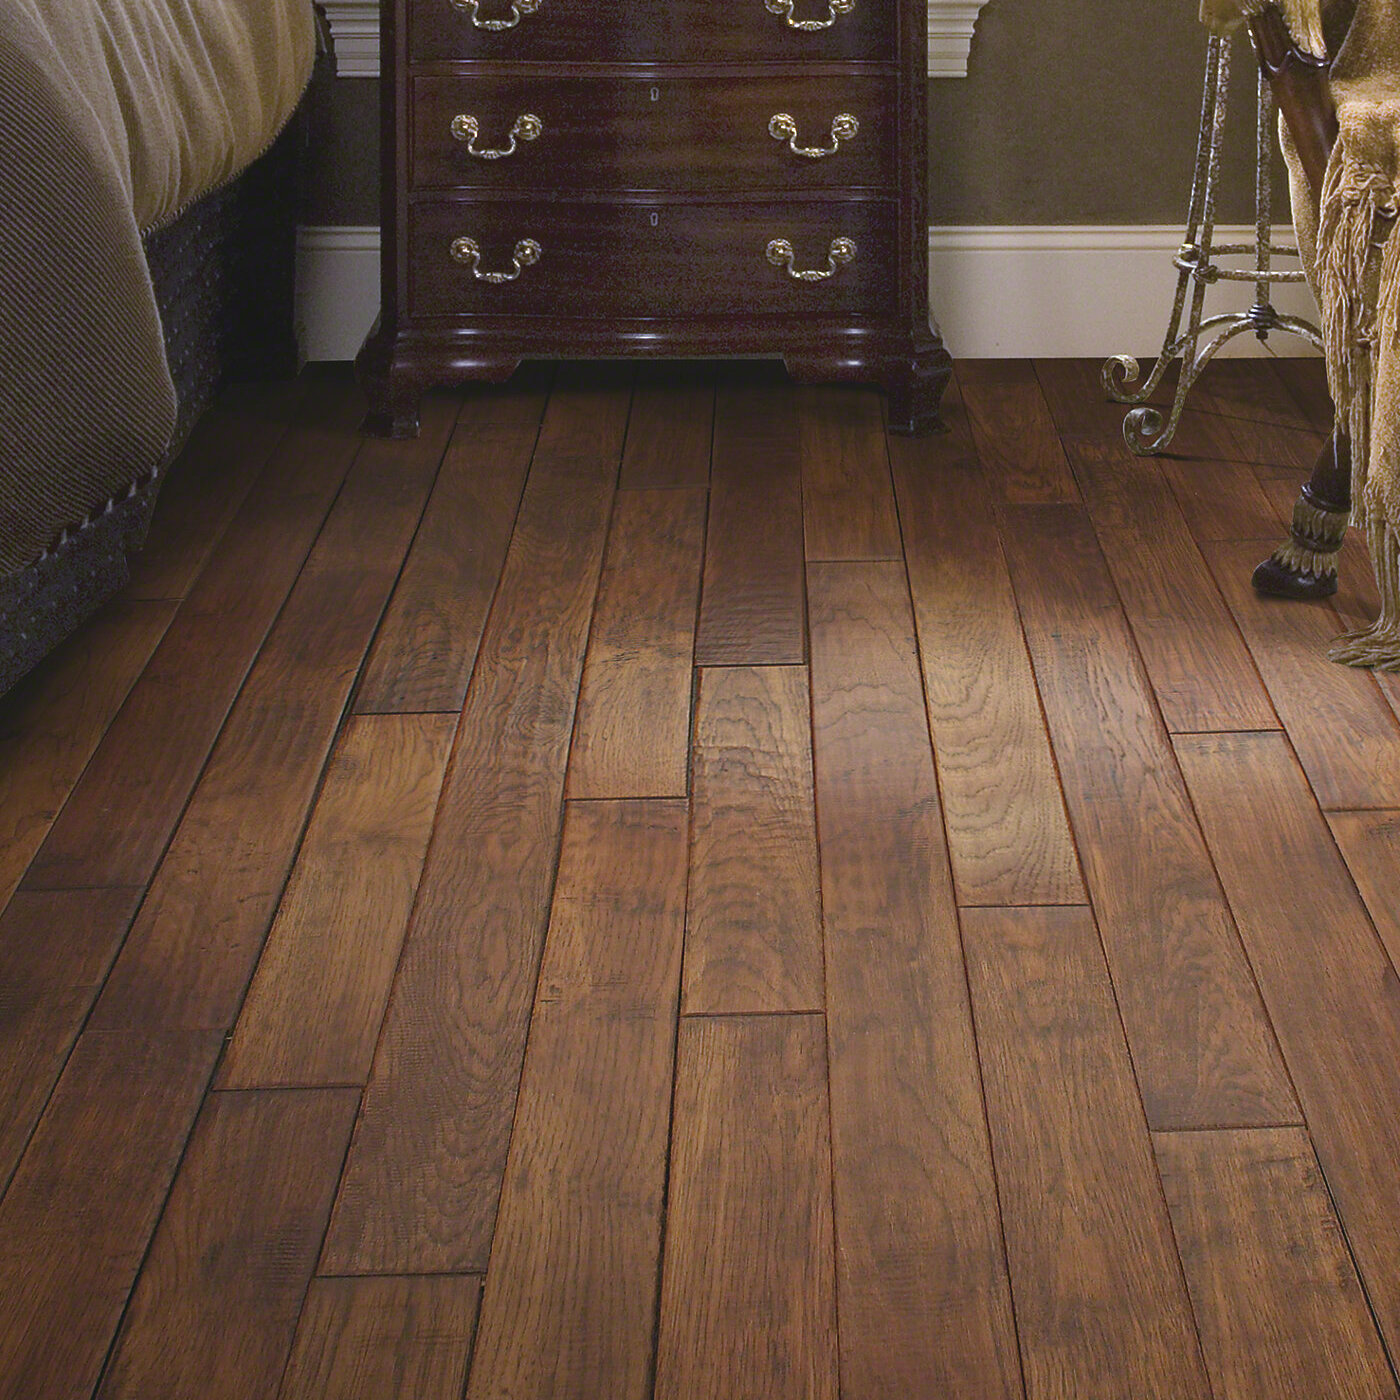 Forest Valley Flooring Fallon 4 Solid Hickory Hardwood Wayfair